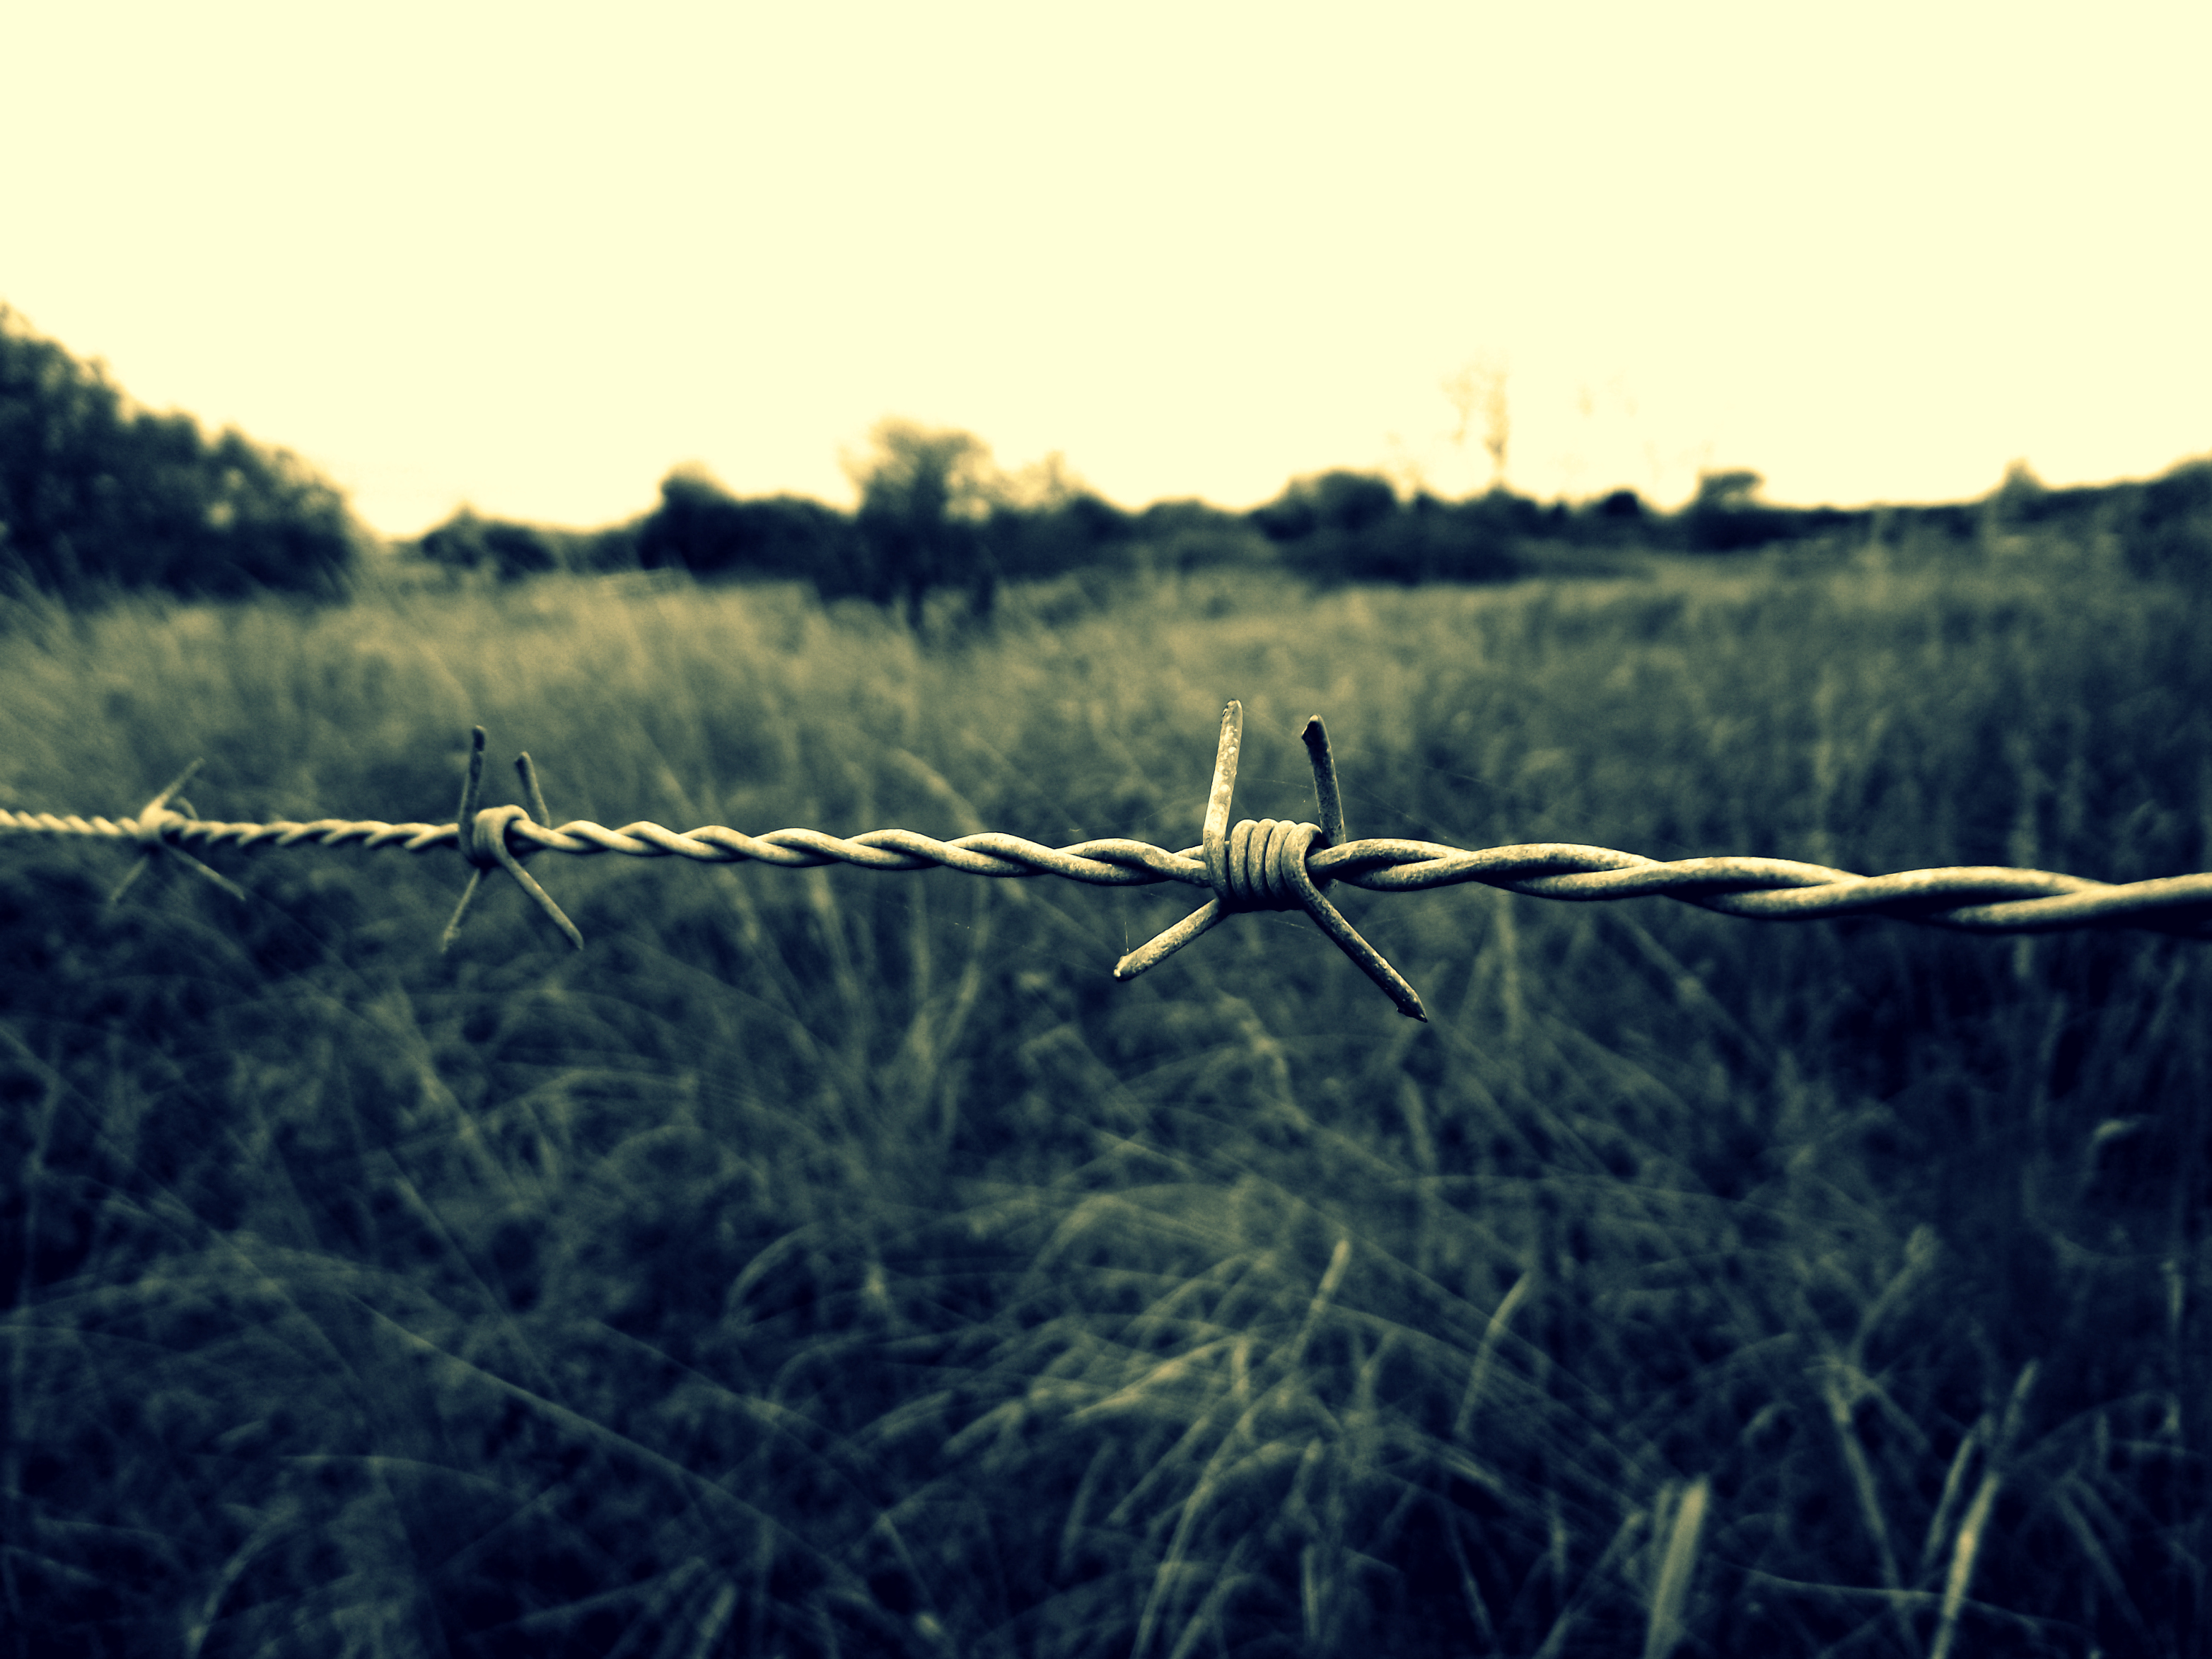 Barbwire by Bouwland